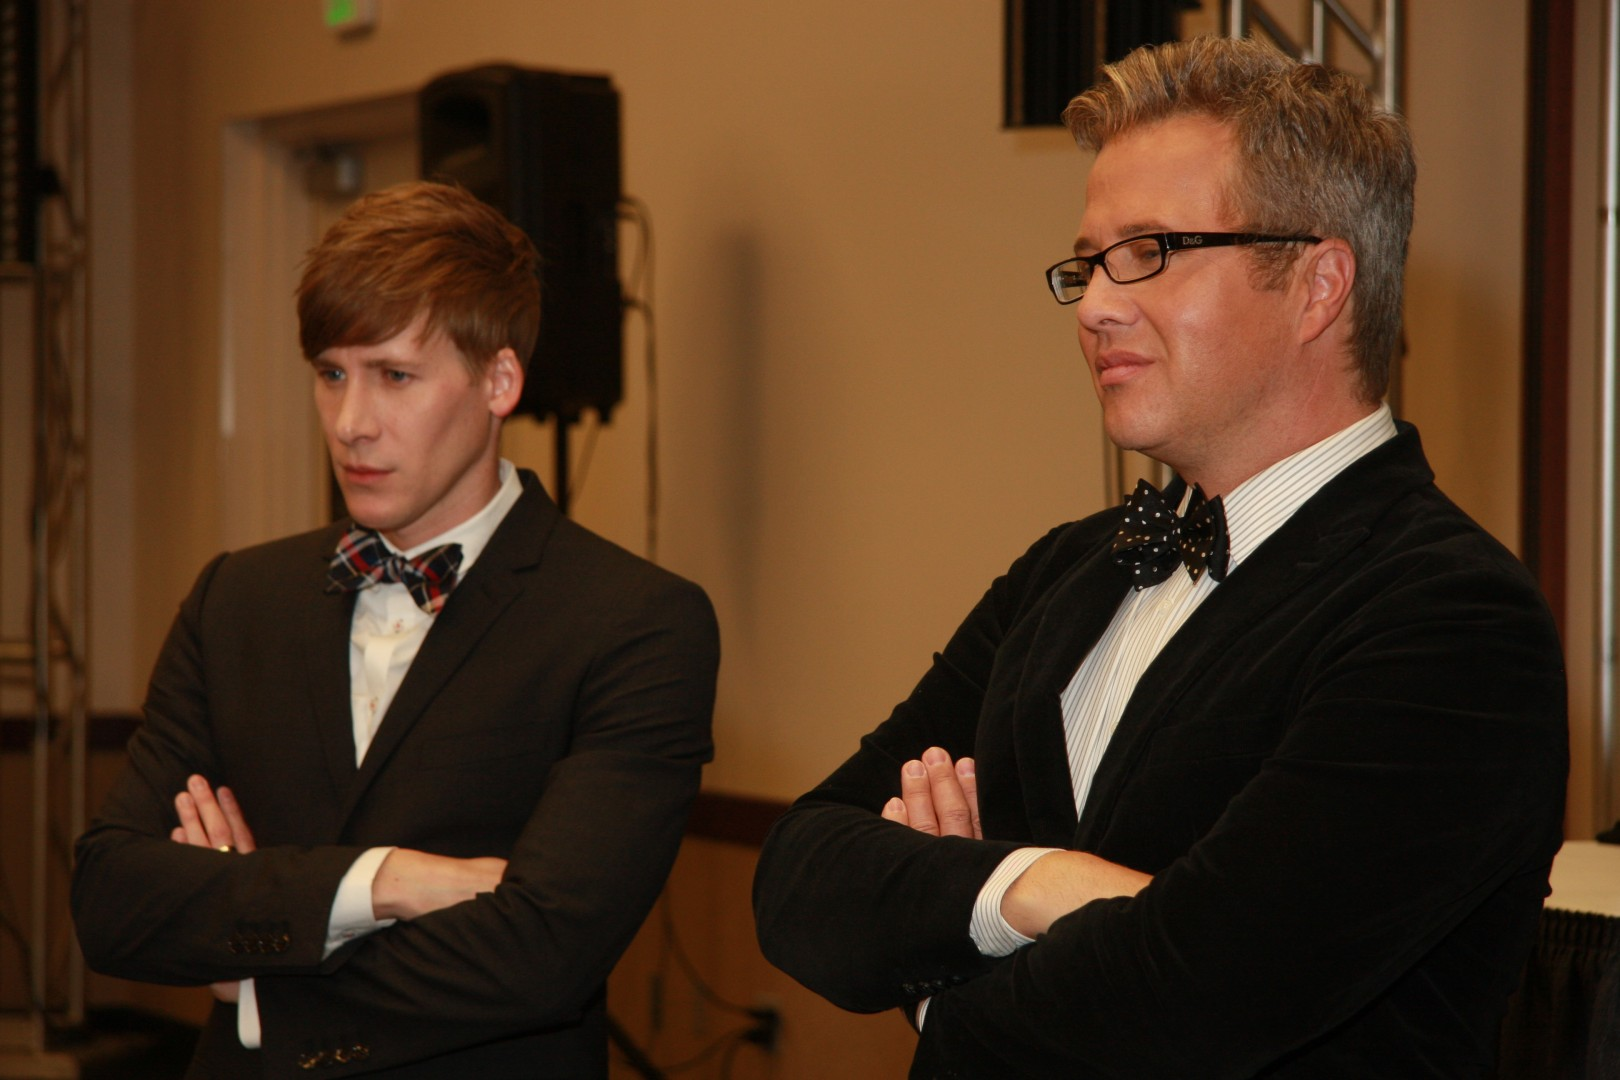 """L to R: Oscar award winner  for """"Milk"""" and keynote speaker, Dustin Lance Black,  ----. Equality Celebration: Come out for Equality at Dixie Center St. George, St. George, Utah, May 18, 2013 